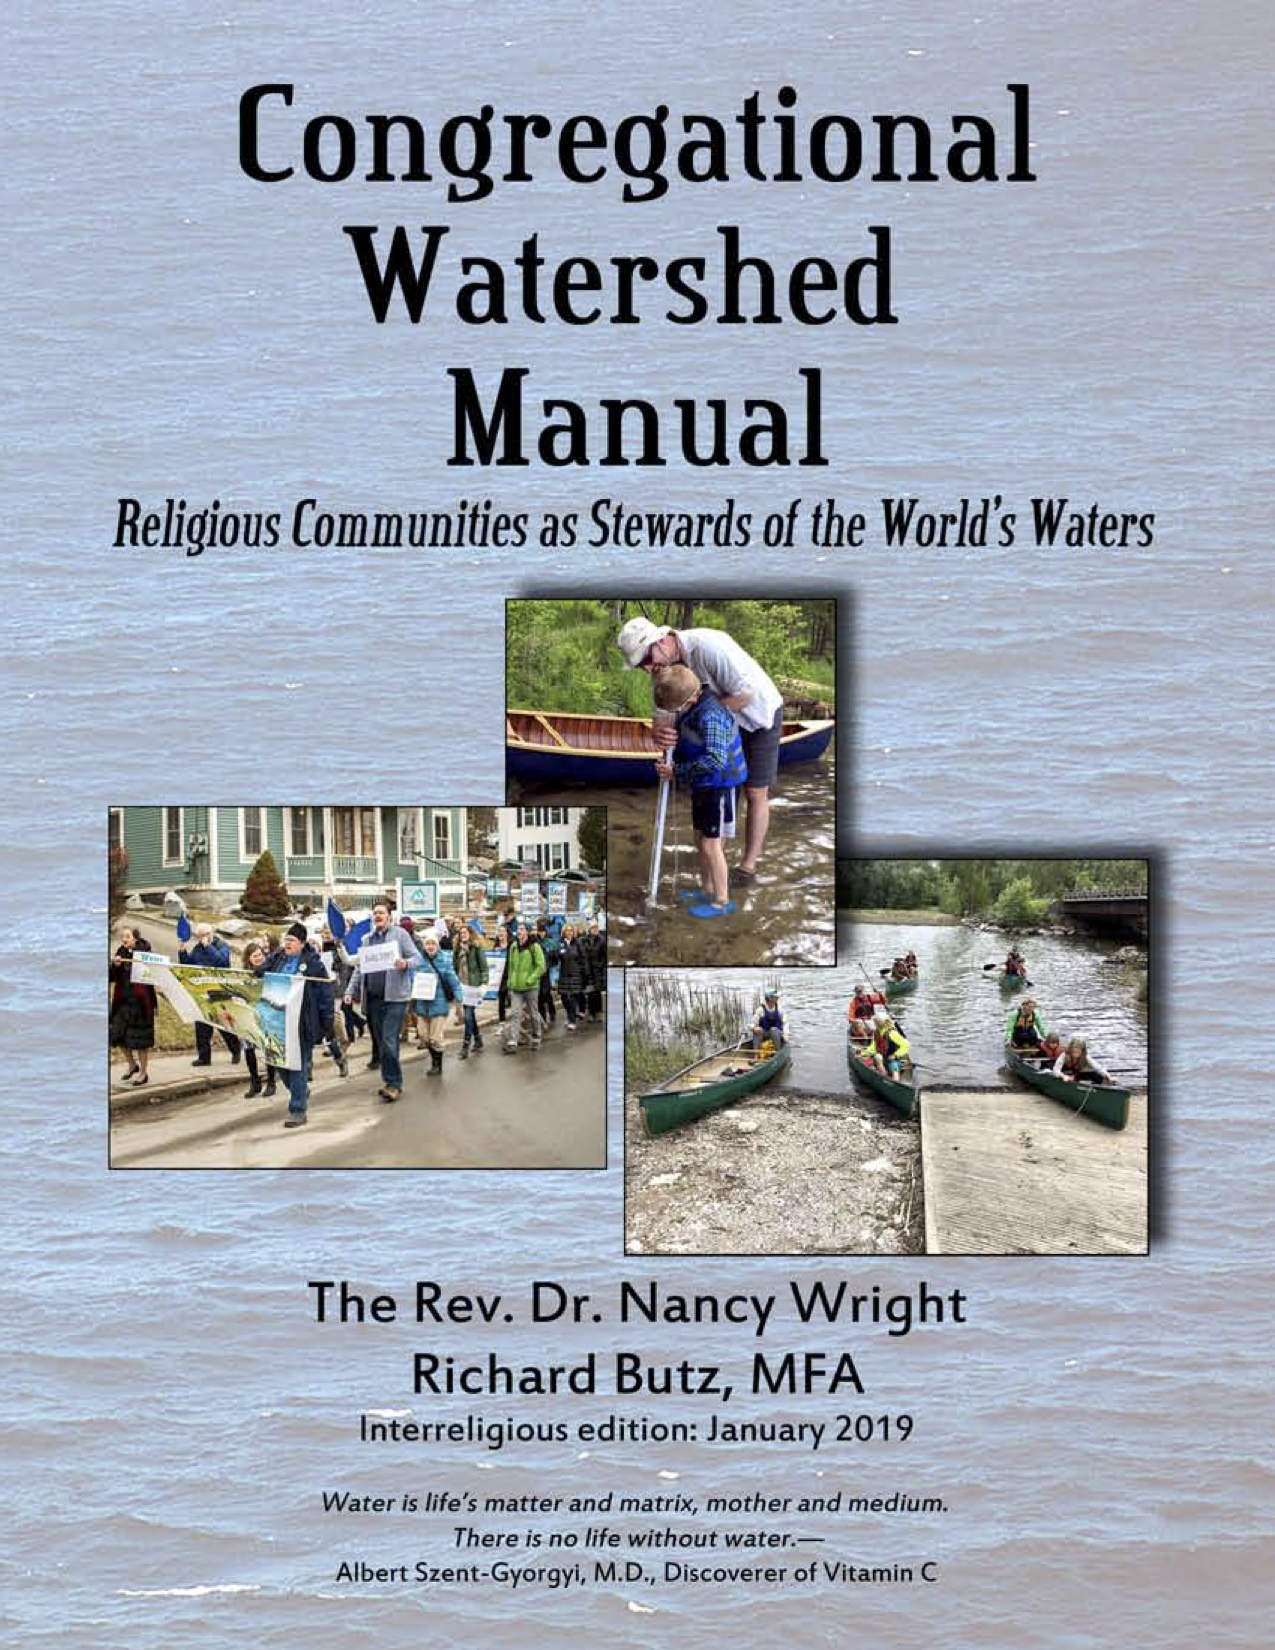 New Resource | Congregational Manuals on Watershed